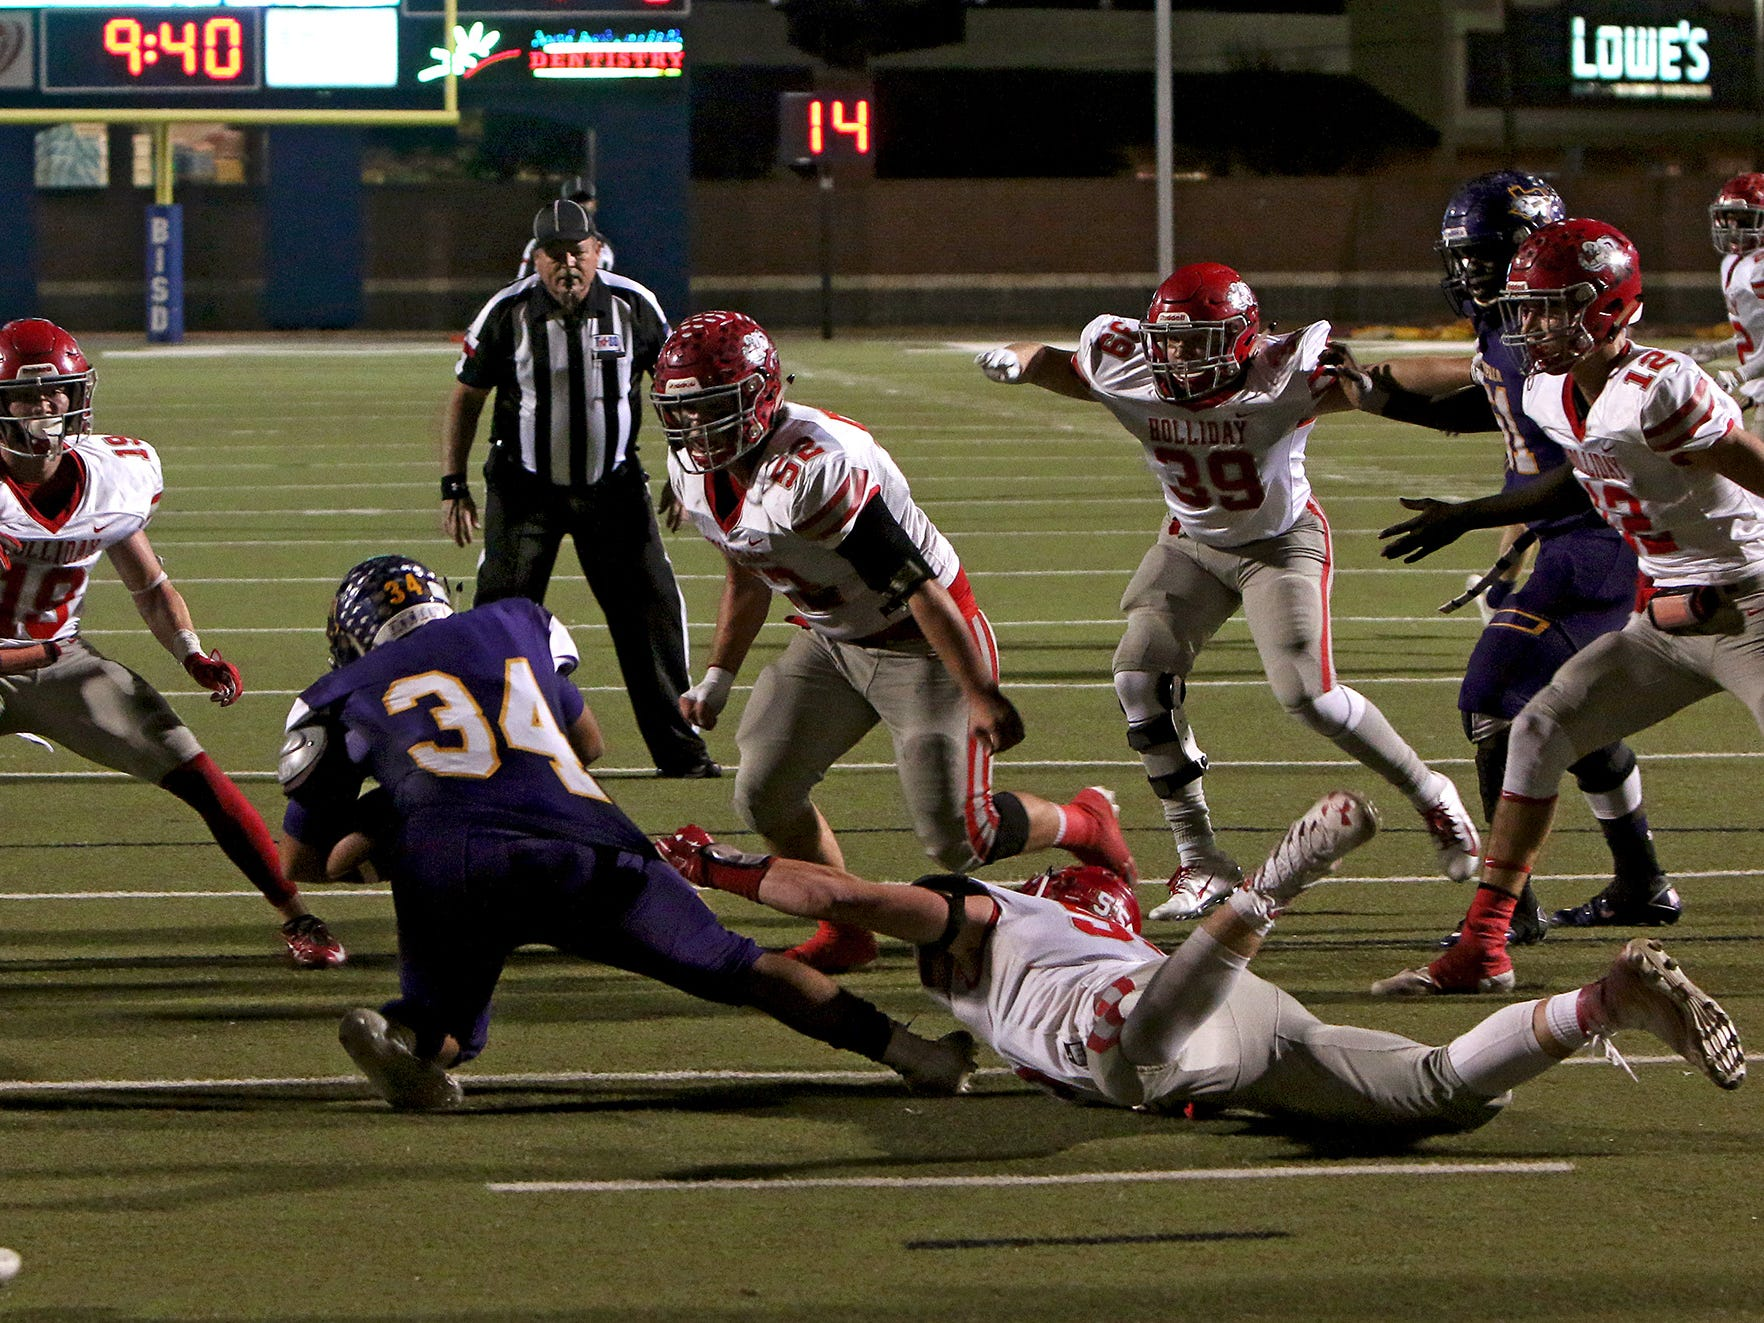 Holliday's Tanner Bayard (55) hangs on to the jersey of Buffalo's Hector Dominguez (34) for a tackle as several Eagle defenders close in on him Friday, Nov. 30, 2018, in the Region II-3A Div. II regional game at Birdville ISD Athletics Complex in North Richland Hills.